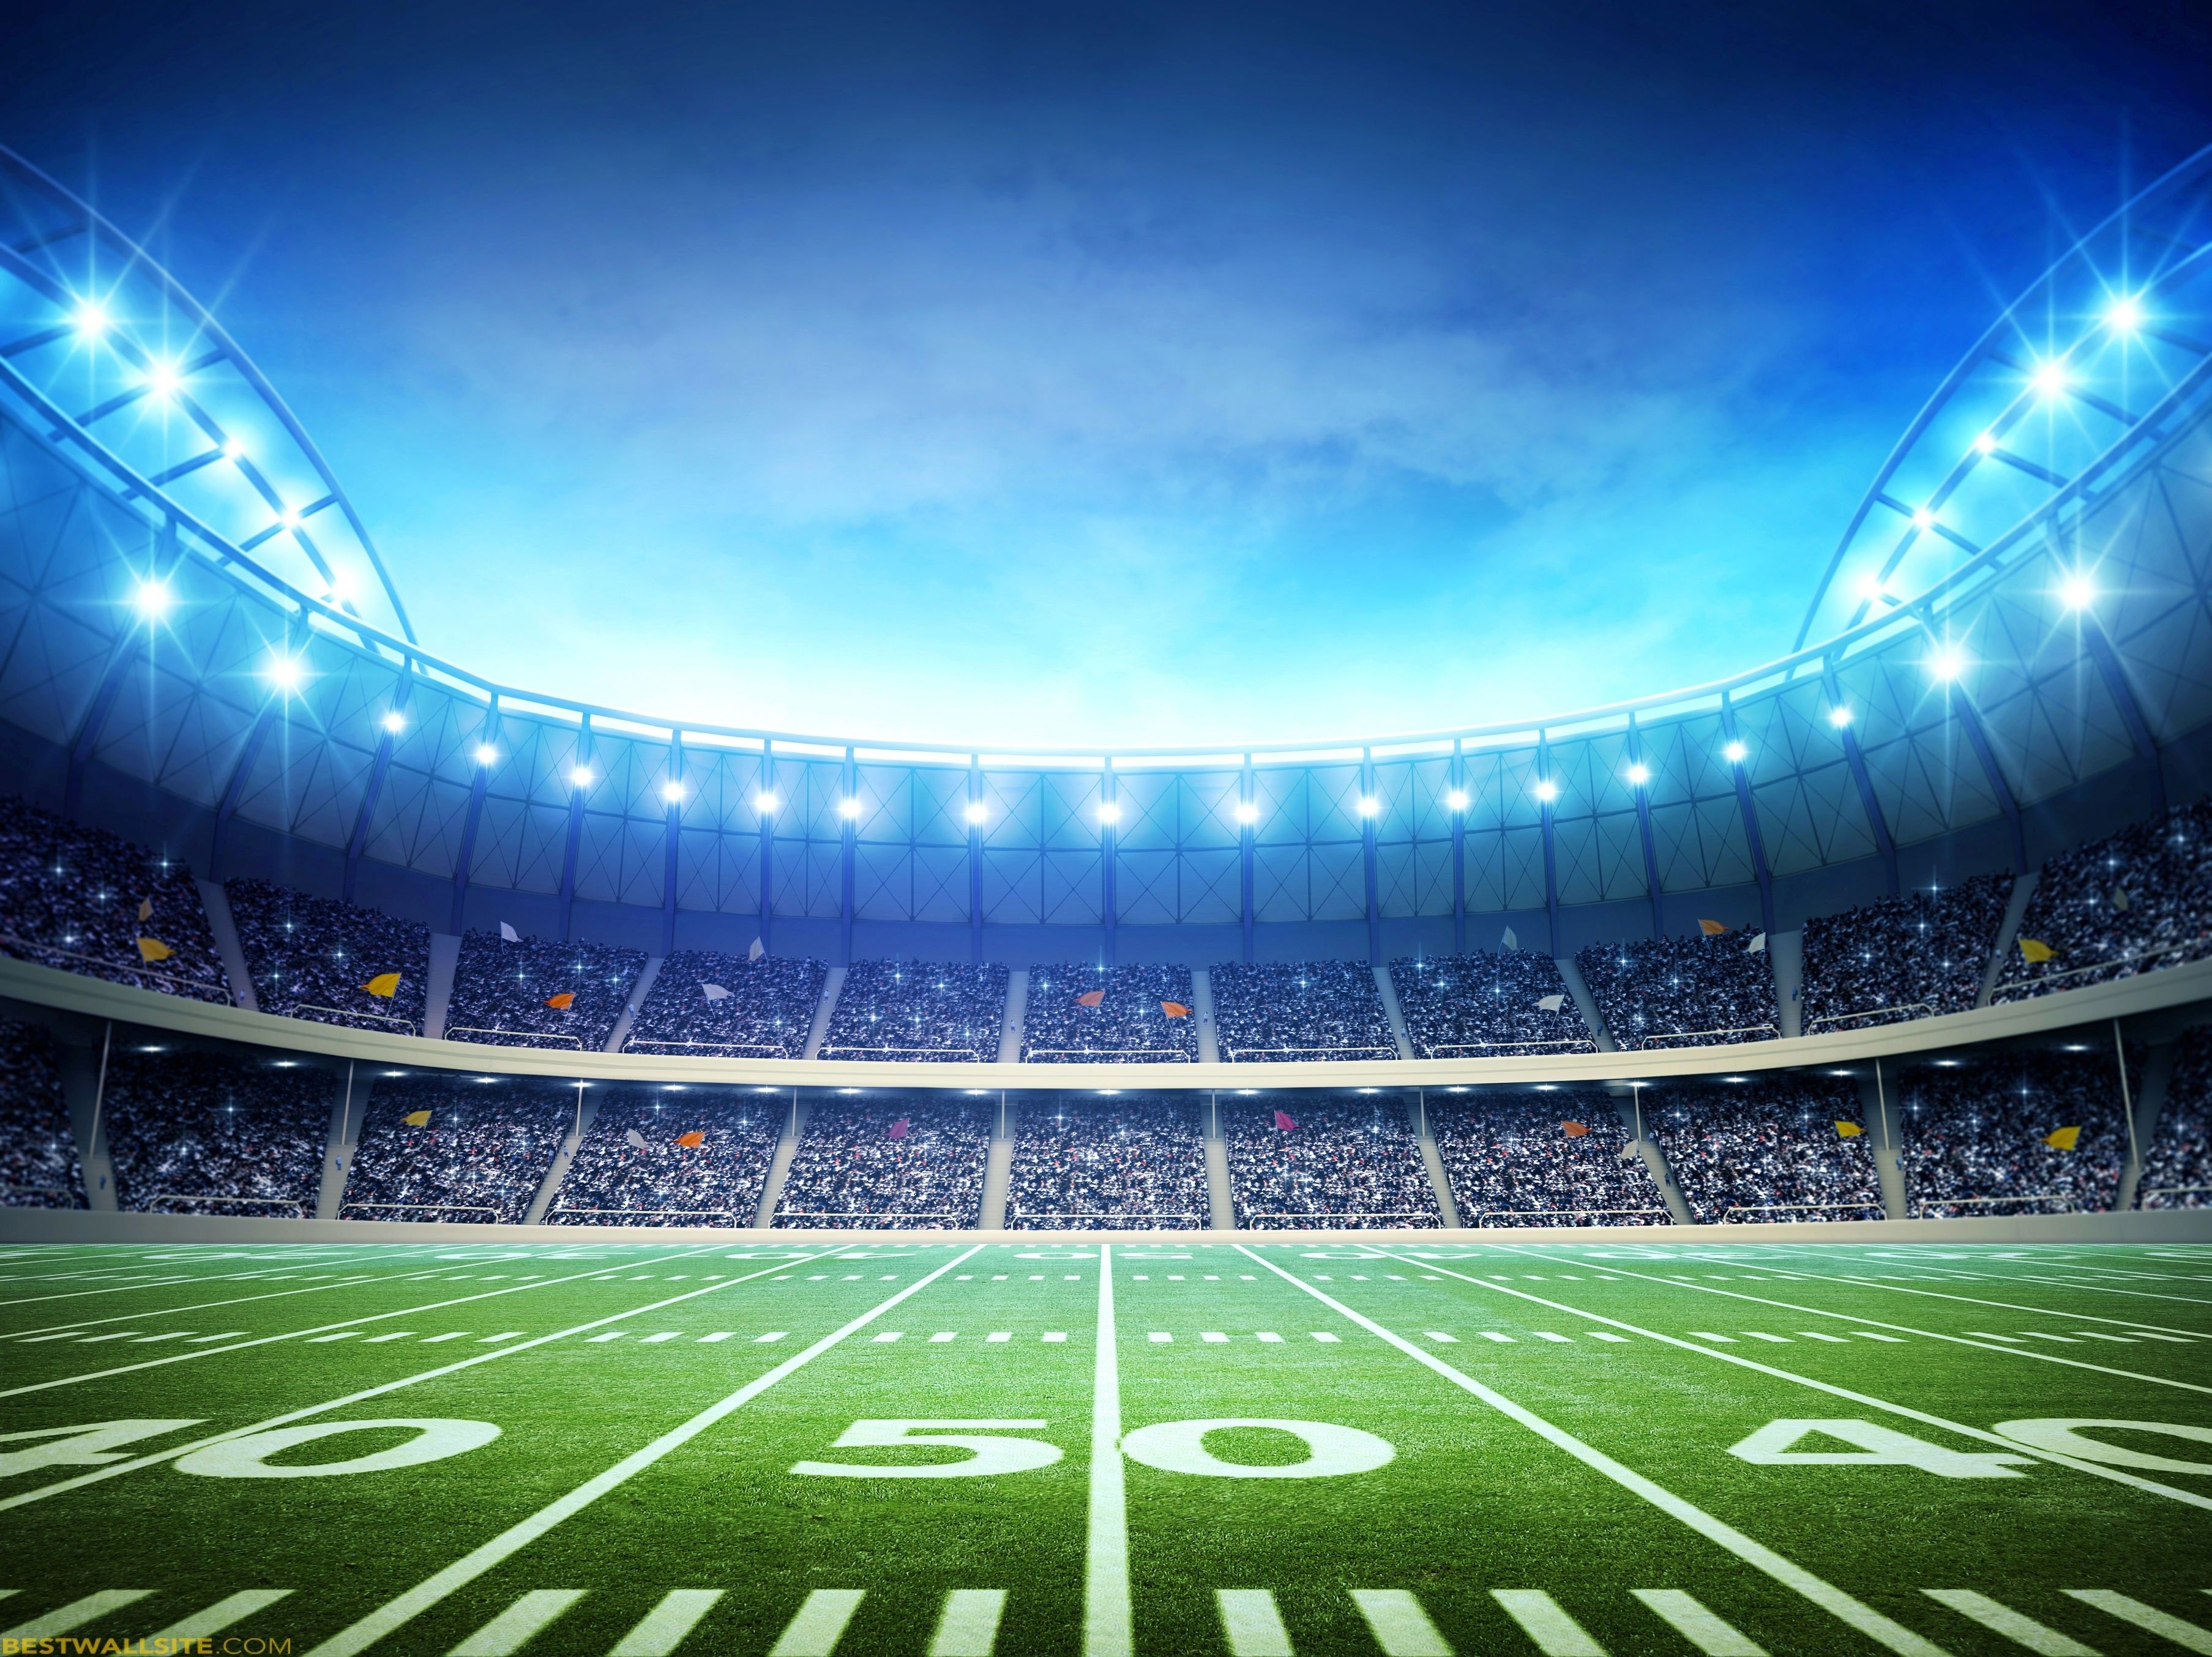 10 Top Nfl Football Stadium Background FULL HD 1080p For PC Background